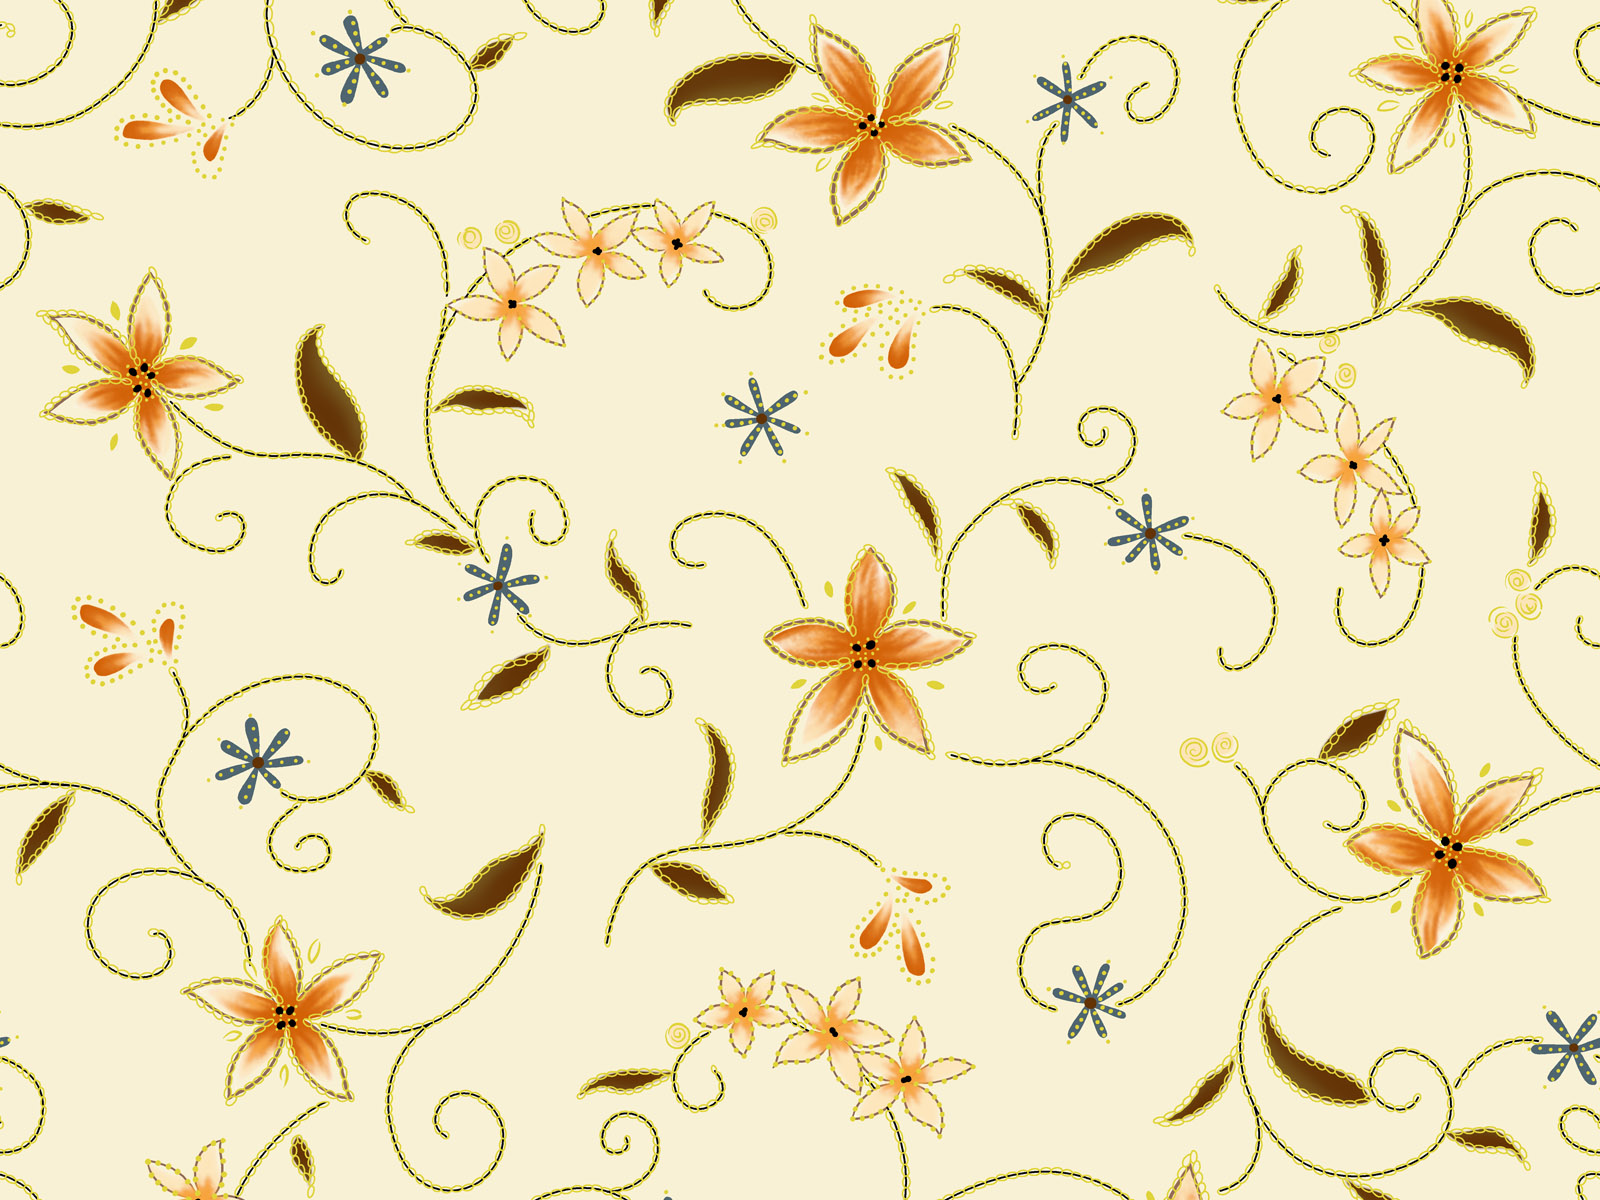 Background wallpaper pattern pattern 1077